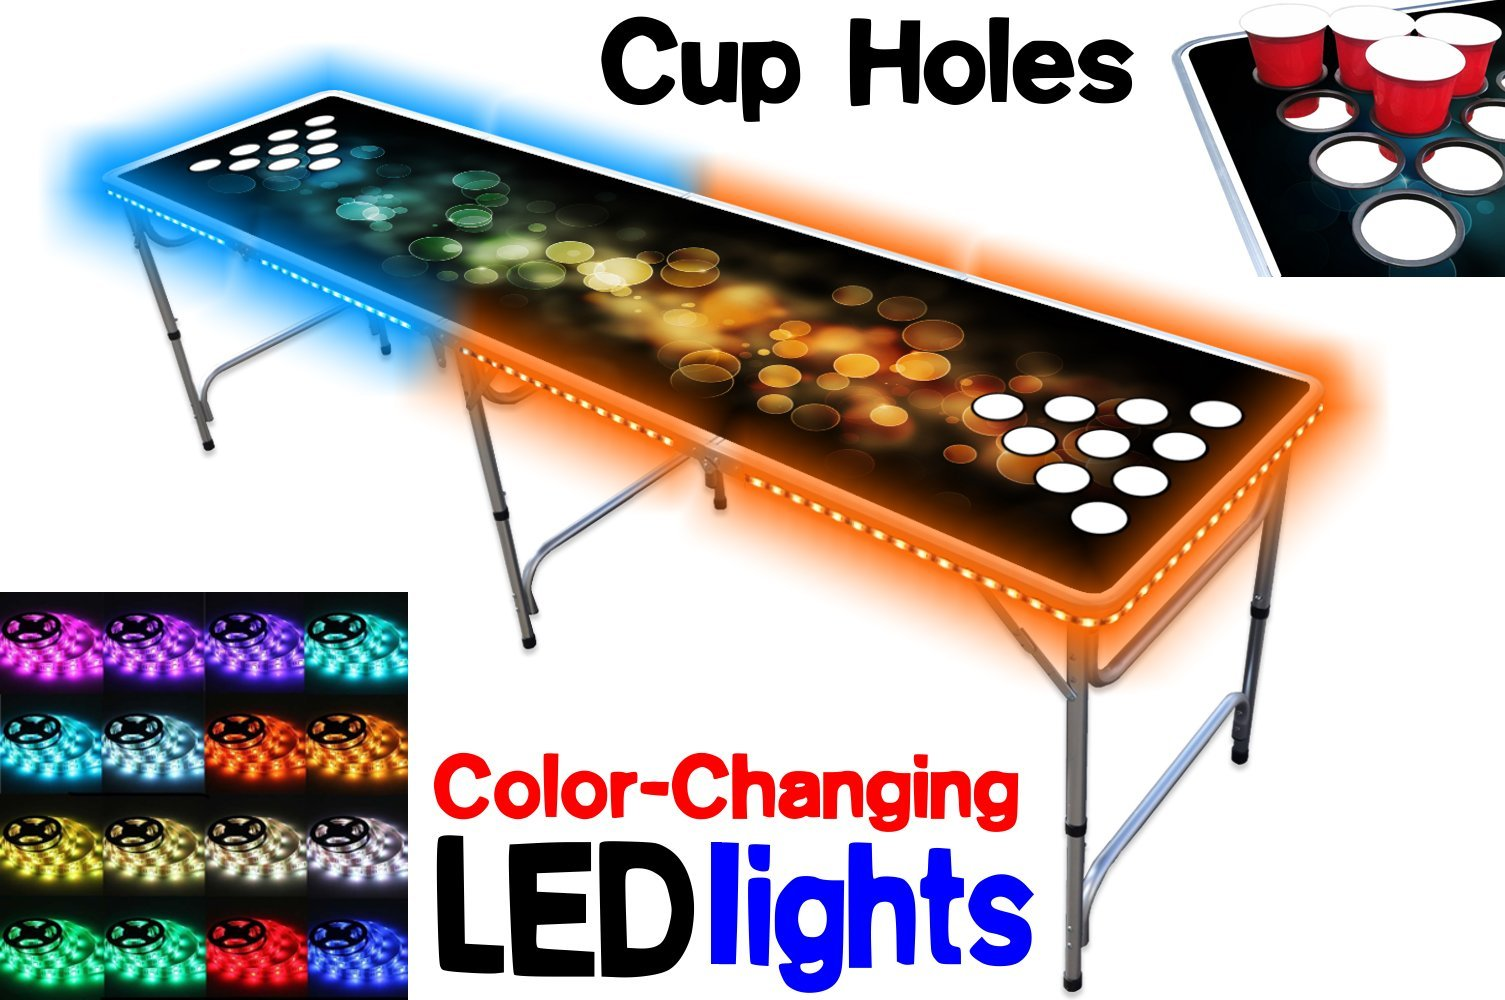 PartyPongTables.com 8-Foot Beer Pong Table with Cup Holes and LED Lights - Bubbles Edition by PartyPongTables